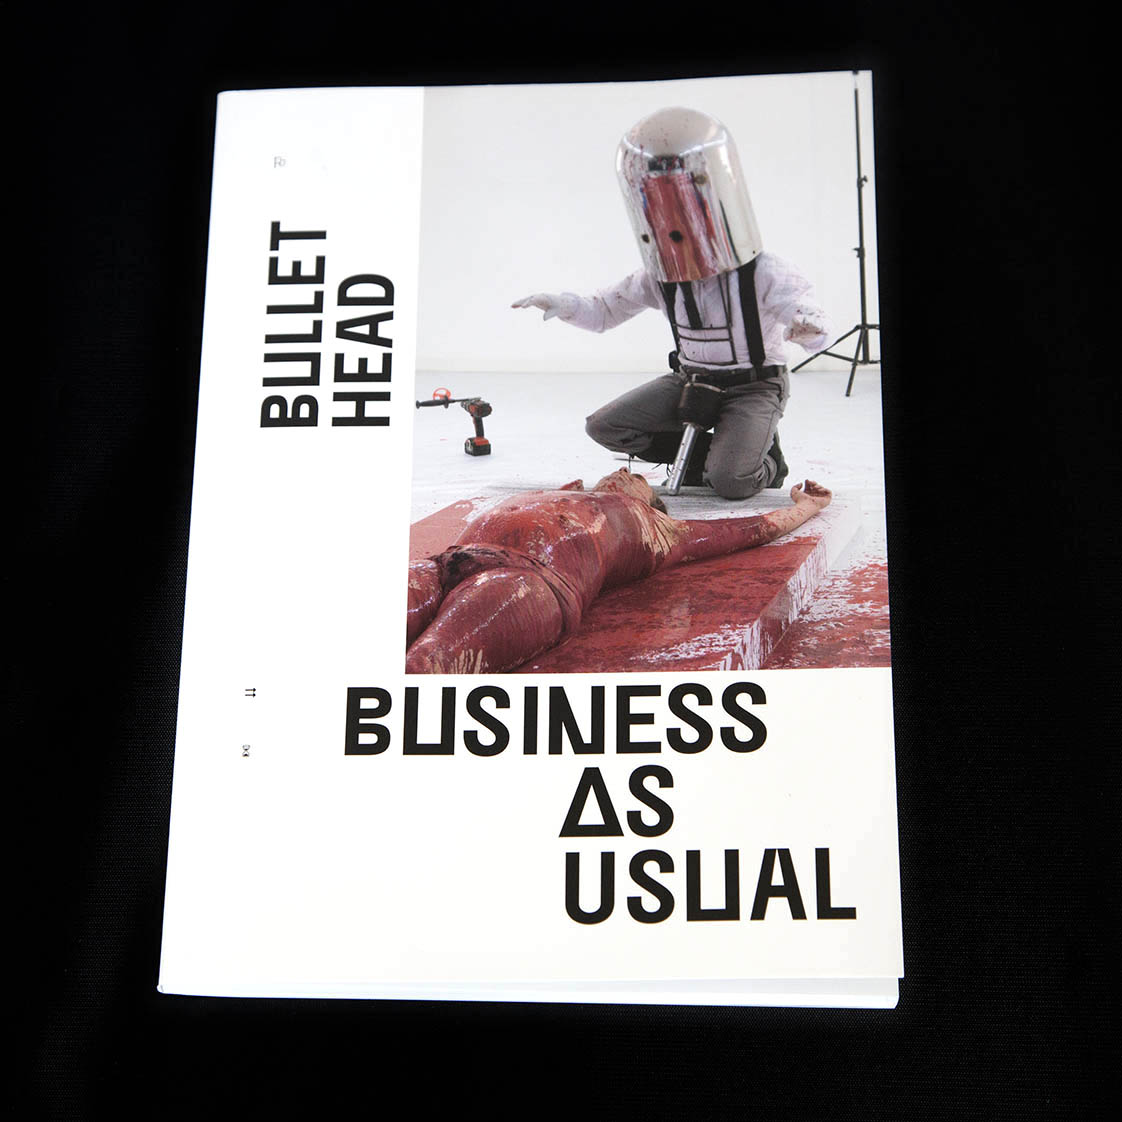 2020 - BULLET HEAD 'Business as usual' -  Paul Segers - Fotografie / photography performance 'A Lecture' by Marcus Peters [Coverphoto Paul Cox]